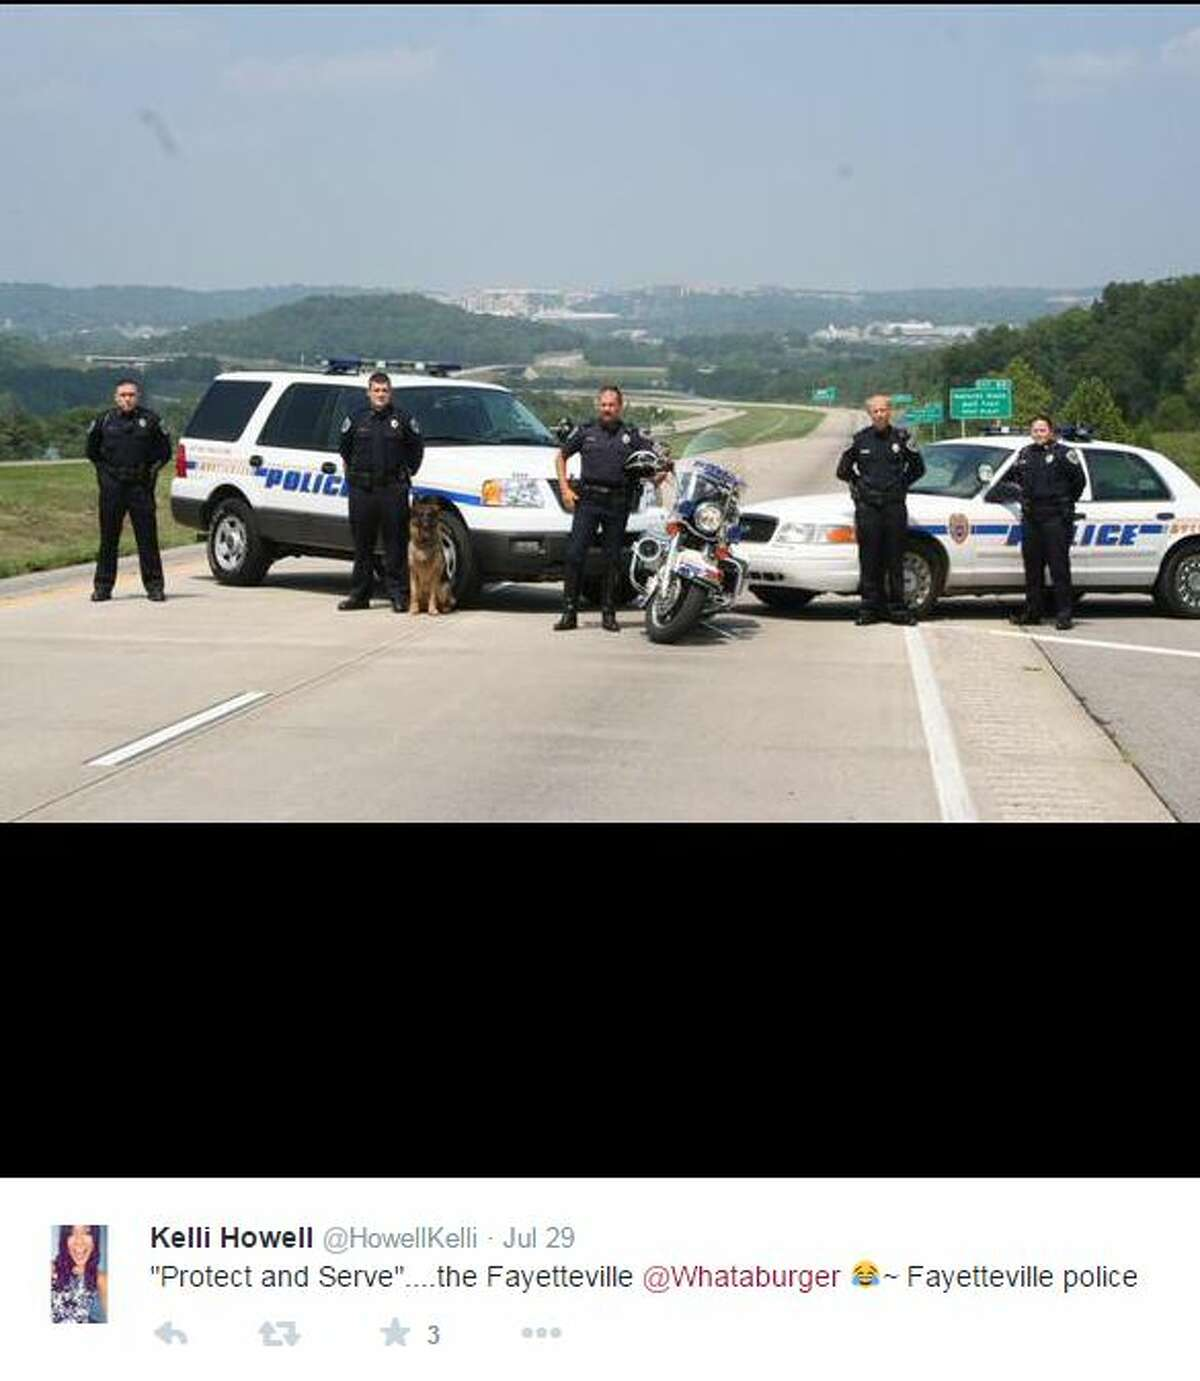 """""""Protect and Serve""""....the Fayetteville @Whataburger Fayetteville police,"""" @HowellKelli"""